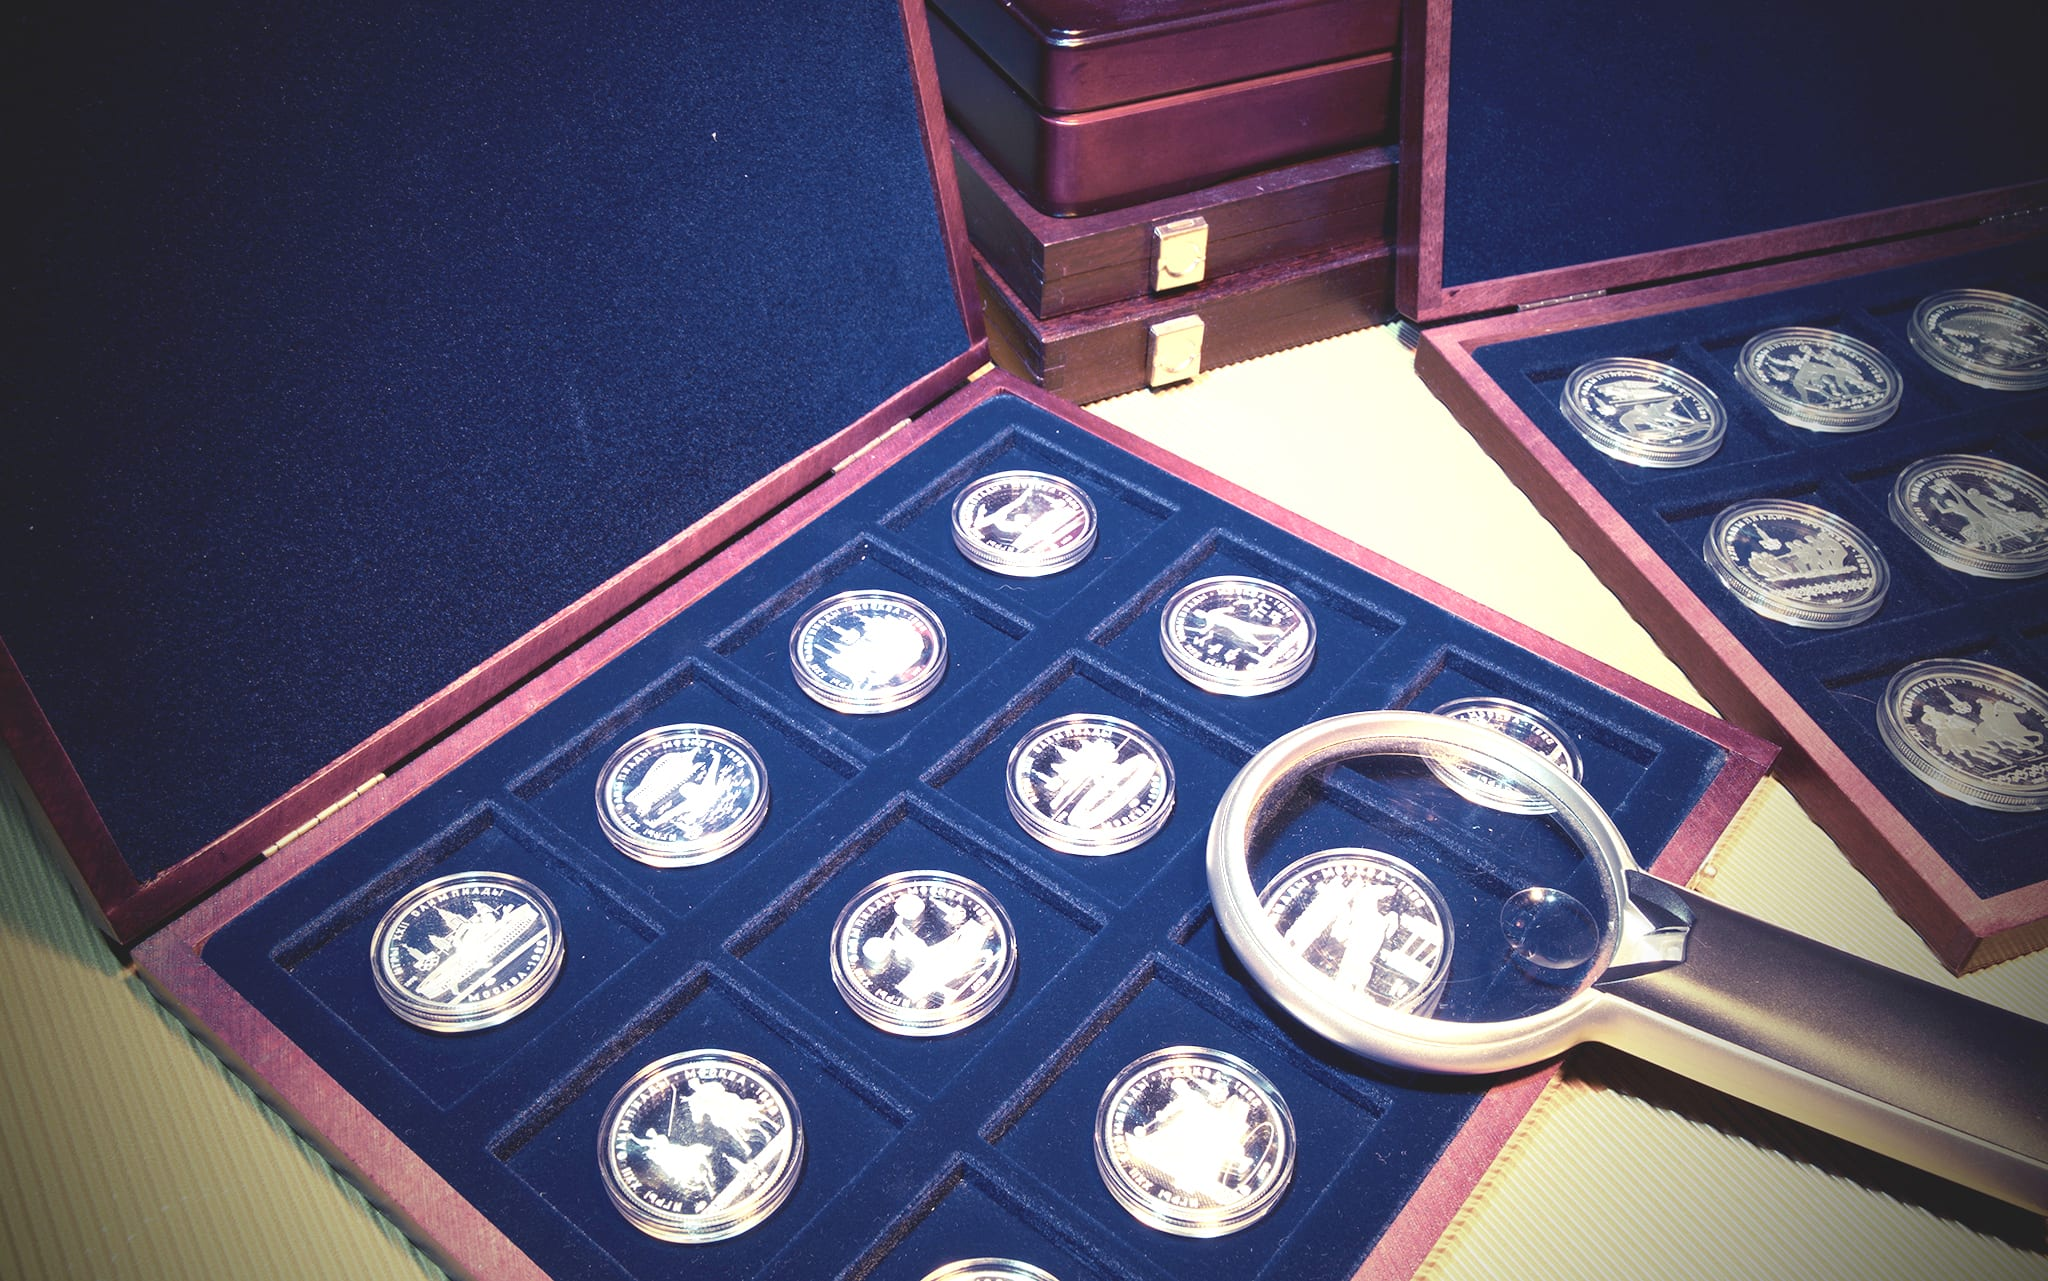 coin sets are a valuable asset to collect and ramzs has a great selection to choose from